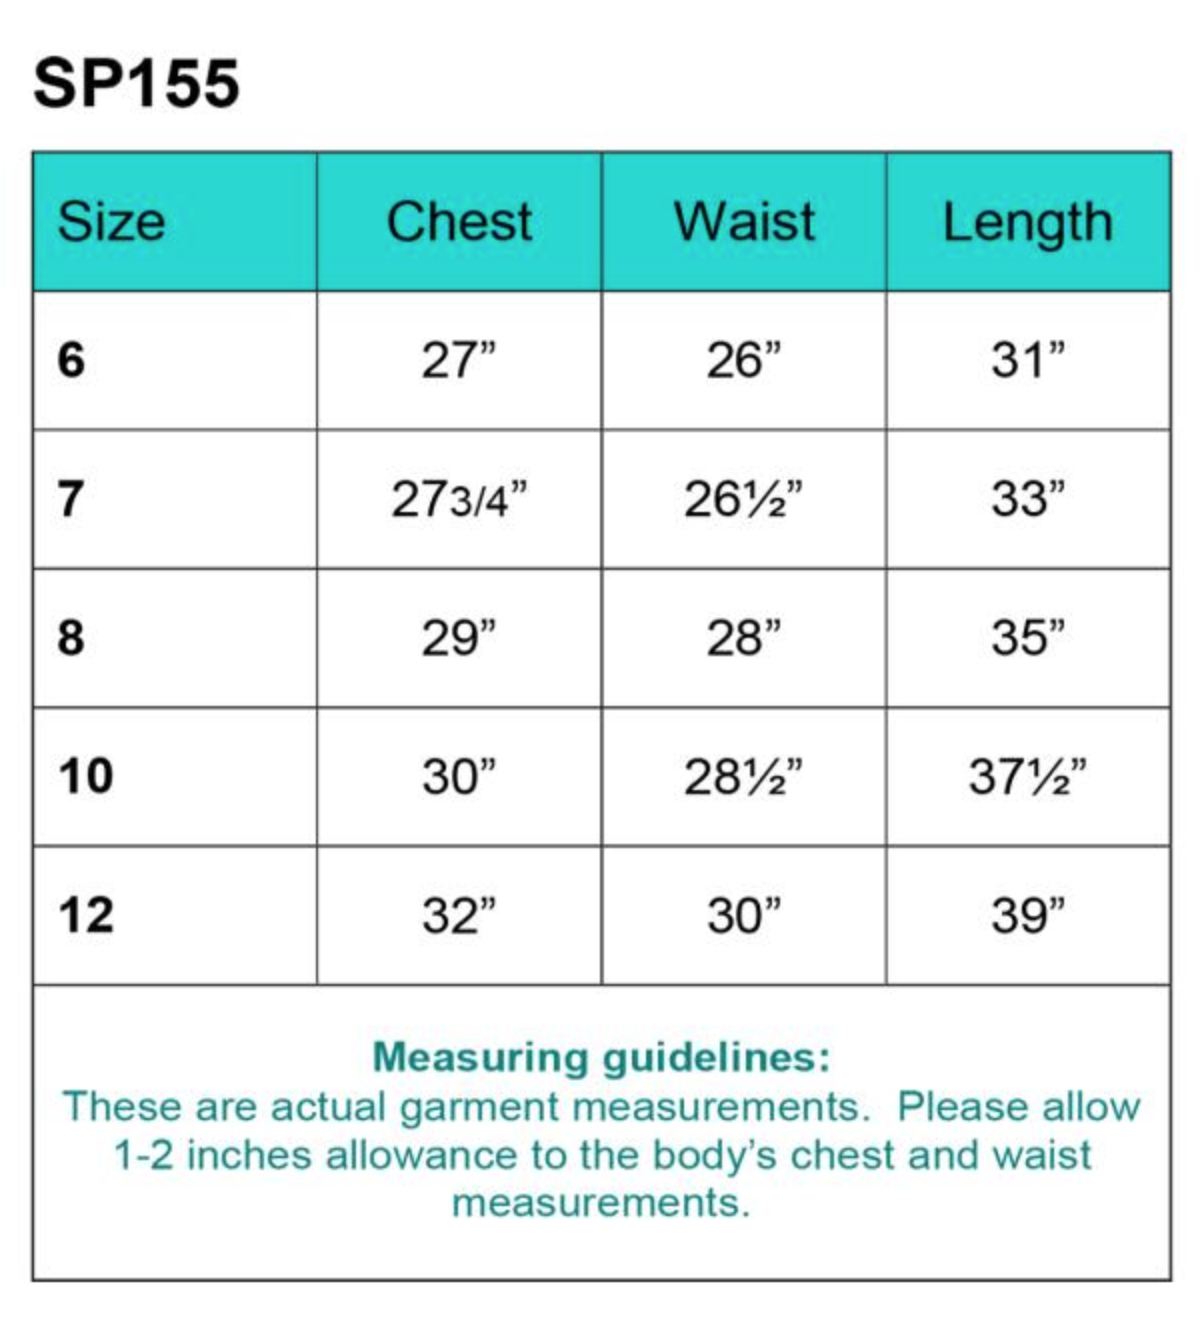 sizing-chart-sp155.png